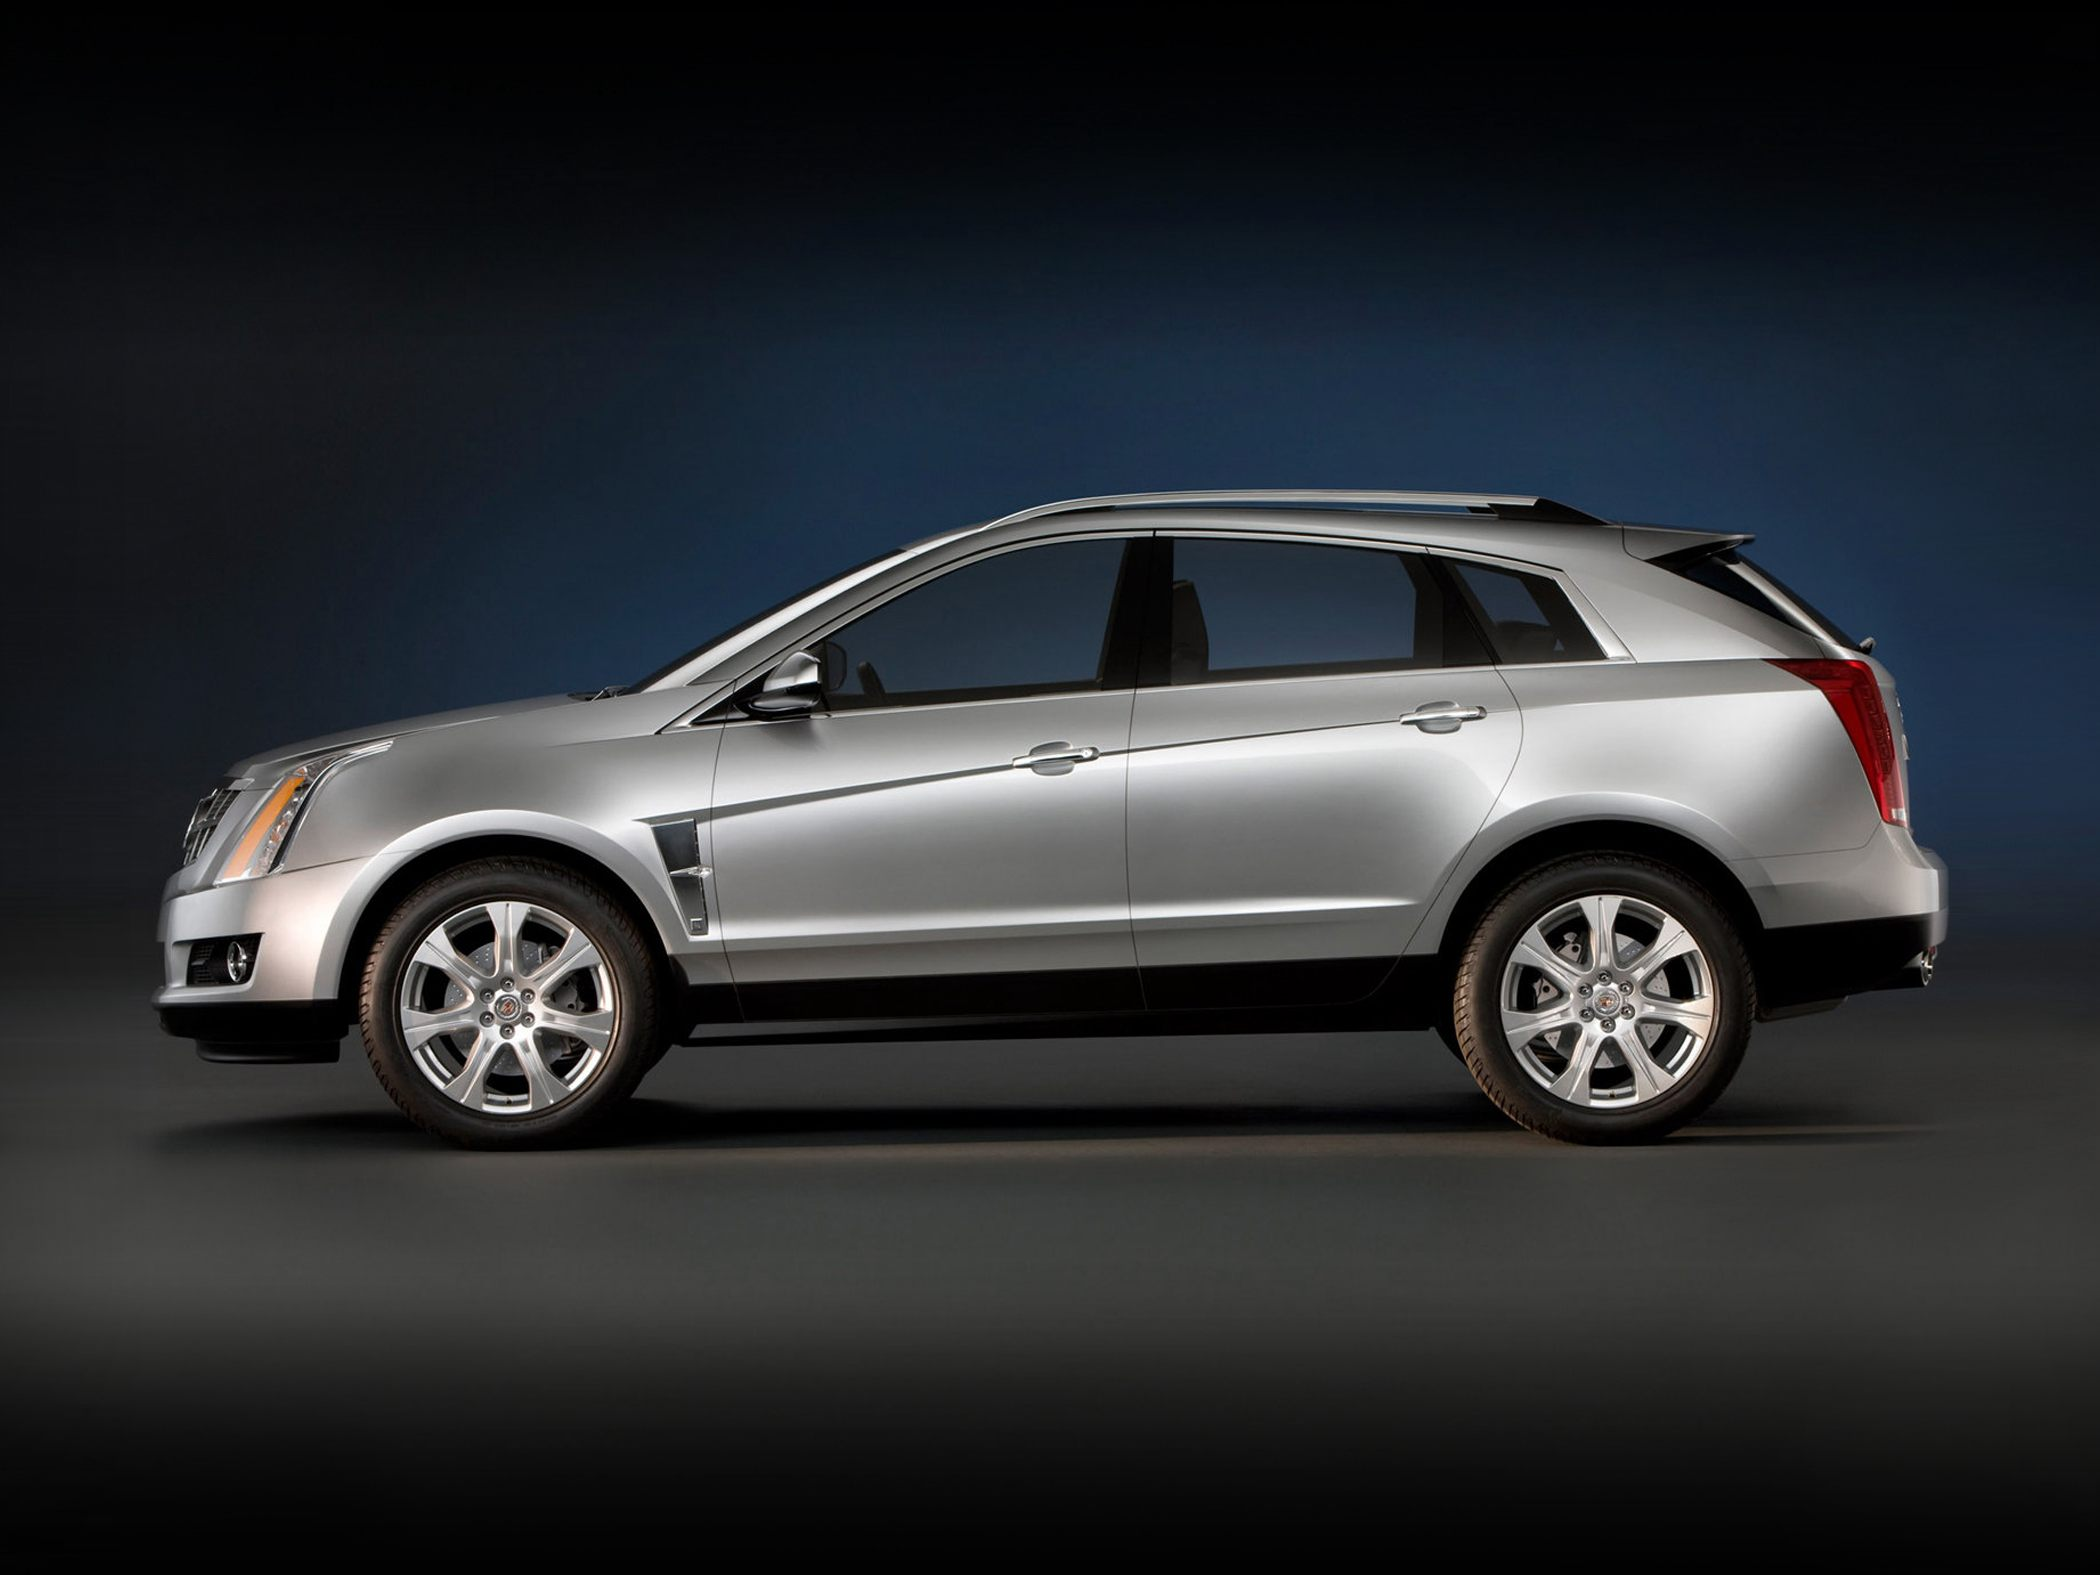 columbia in british srx cadillac used penticton inventory for sale